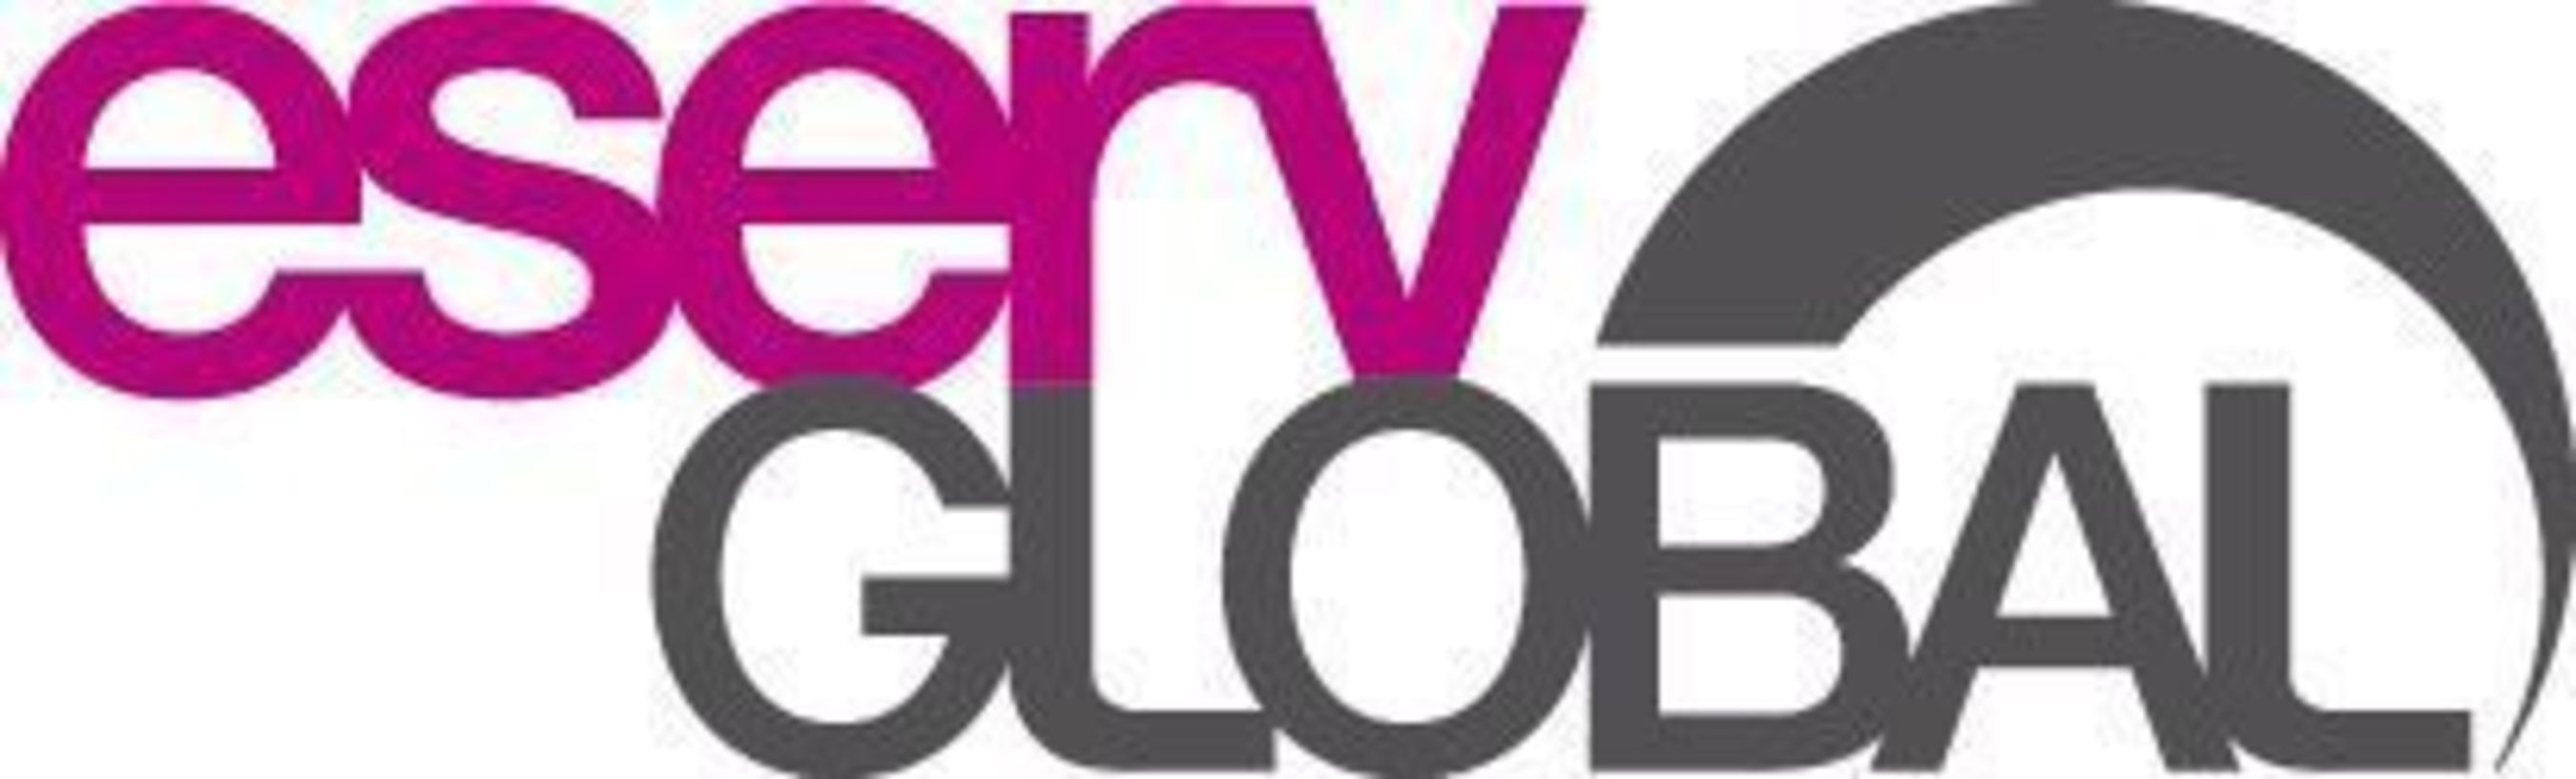 eServGlobal Announces Mobile Money Project with GMT Cabo Verde